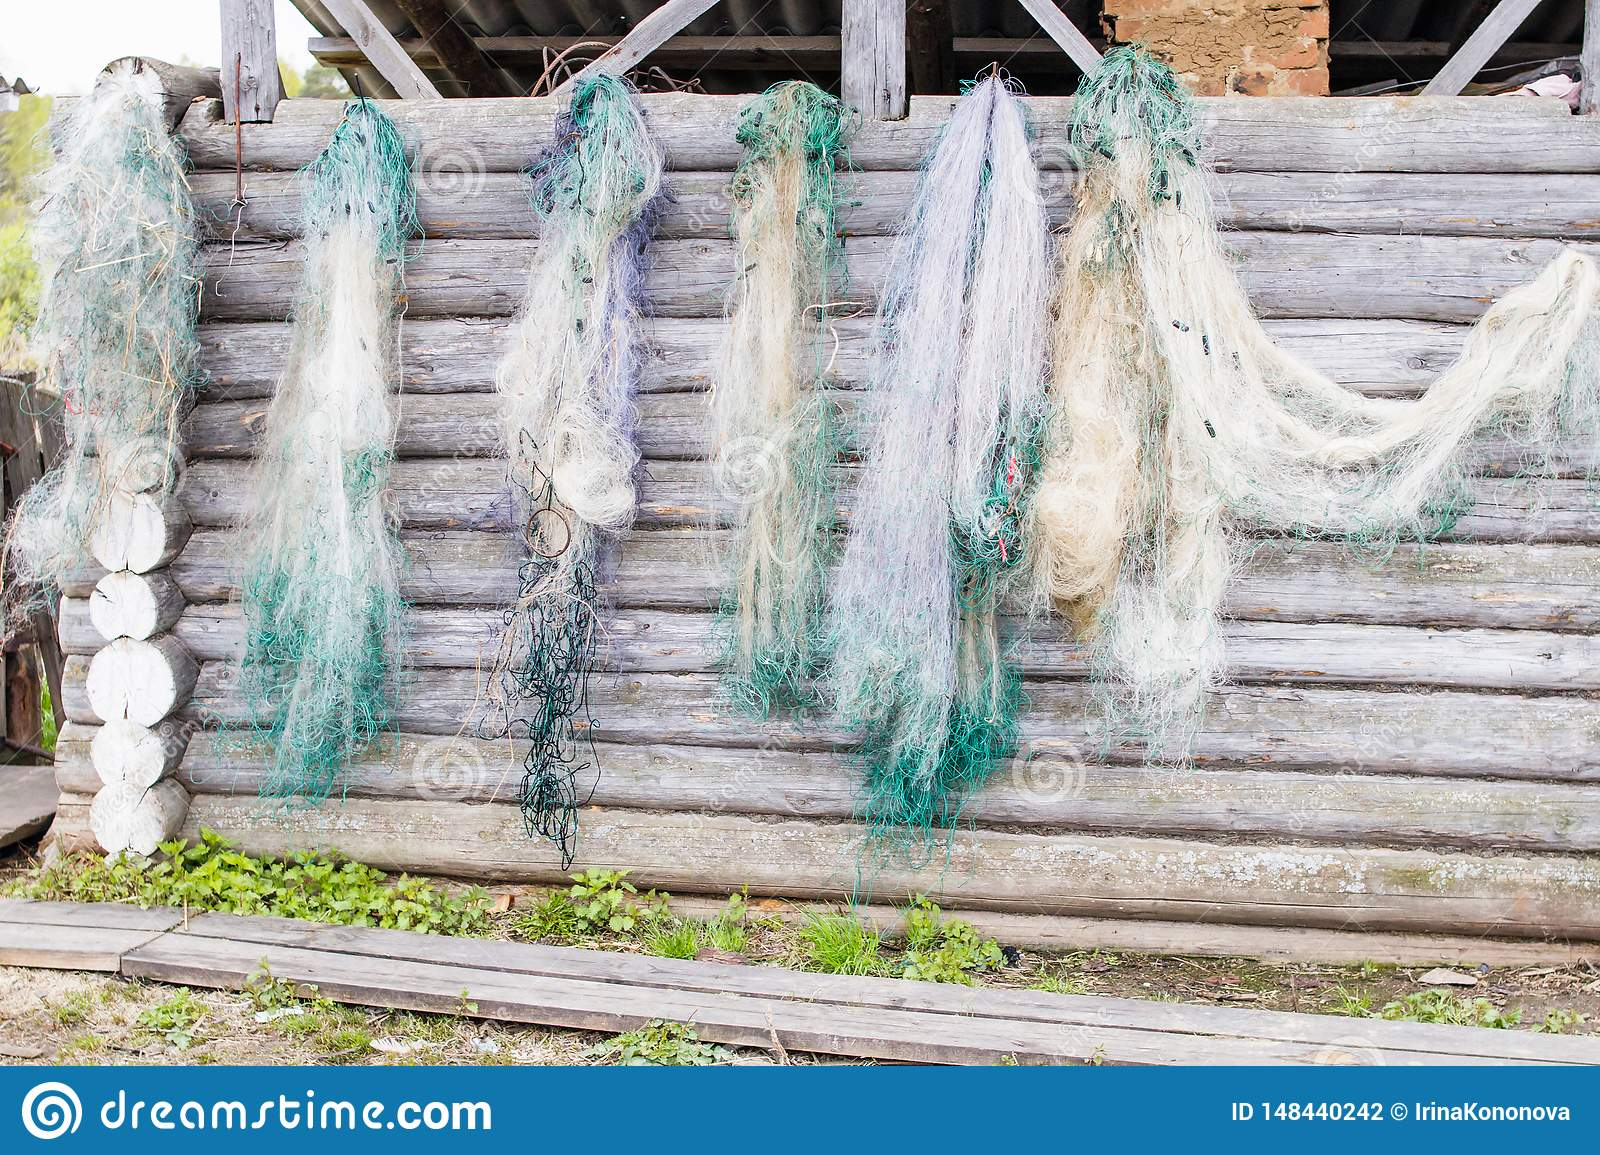 Fishing nets are dried on a log wall